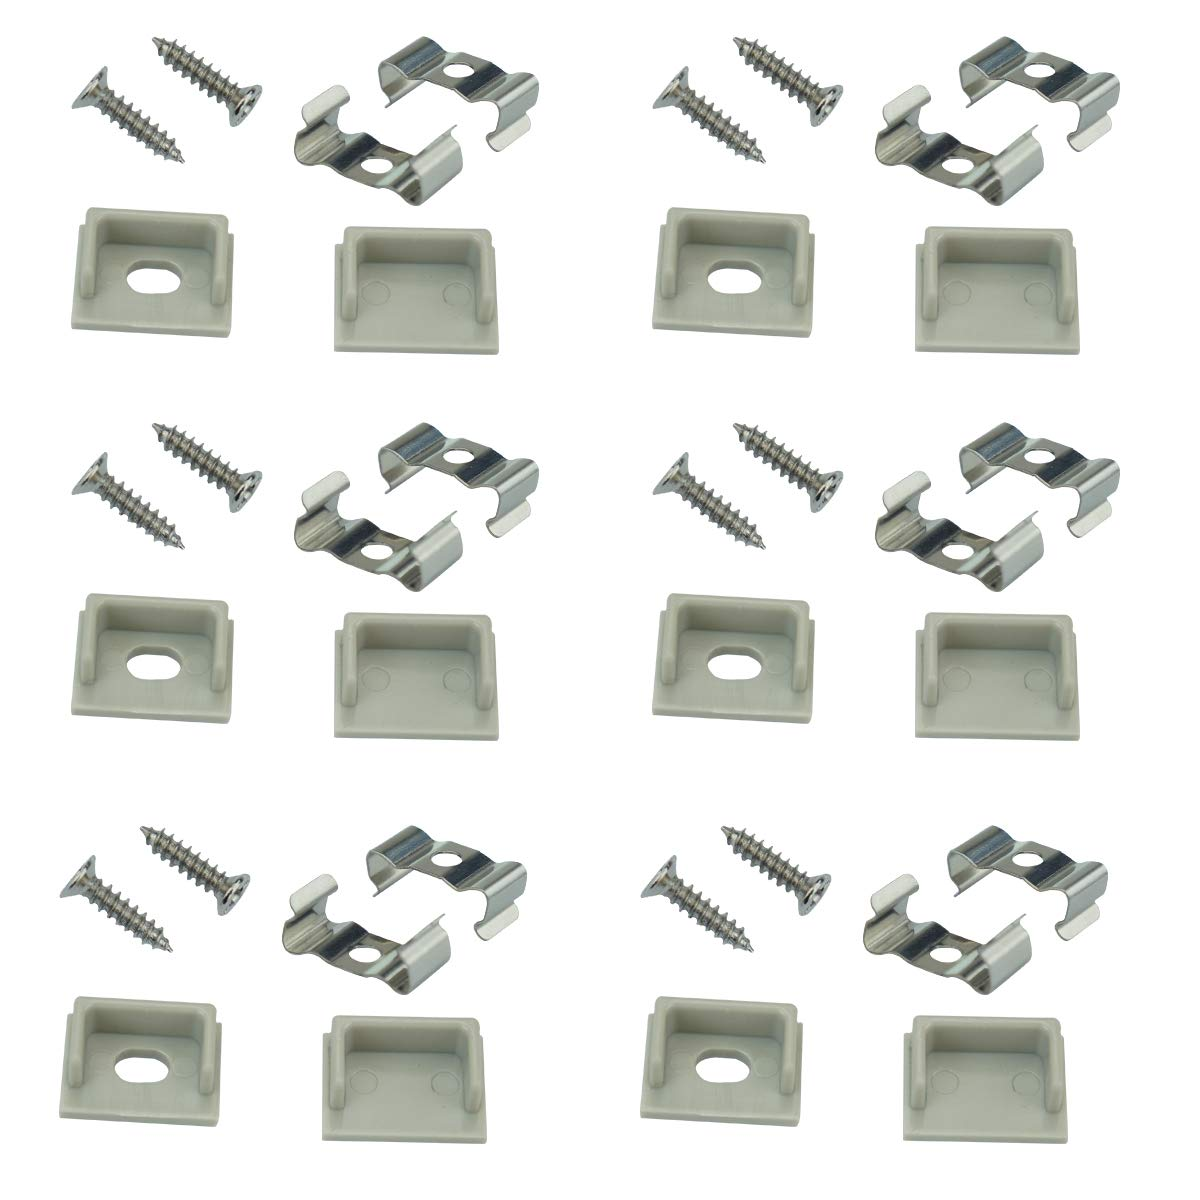 Muzata LED Channel Mounting Clips and End Caps Suit for Muzata U102 and 189MM U Shape Aluminum Channel in The Market,12-Pack LC18 WW